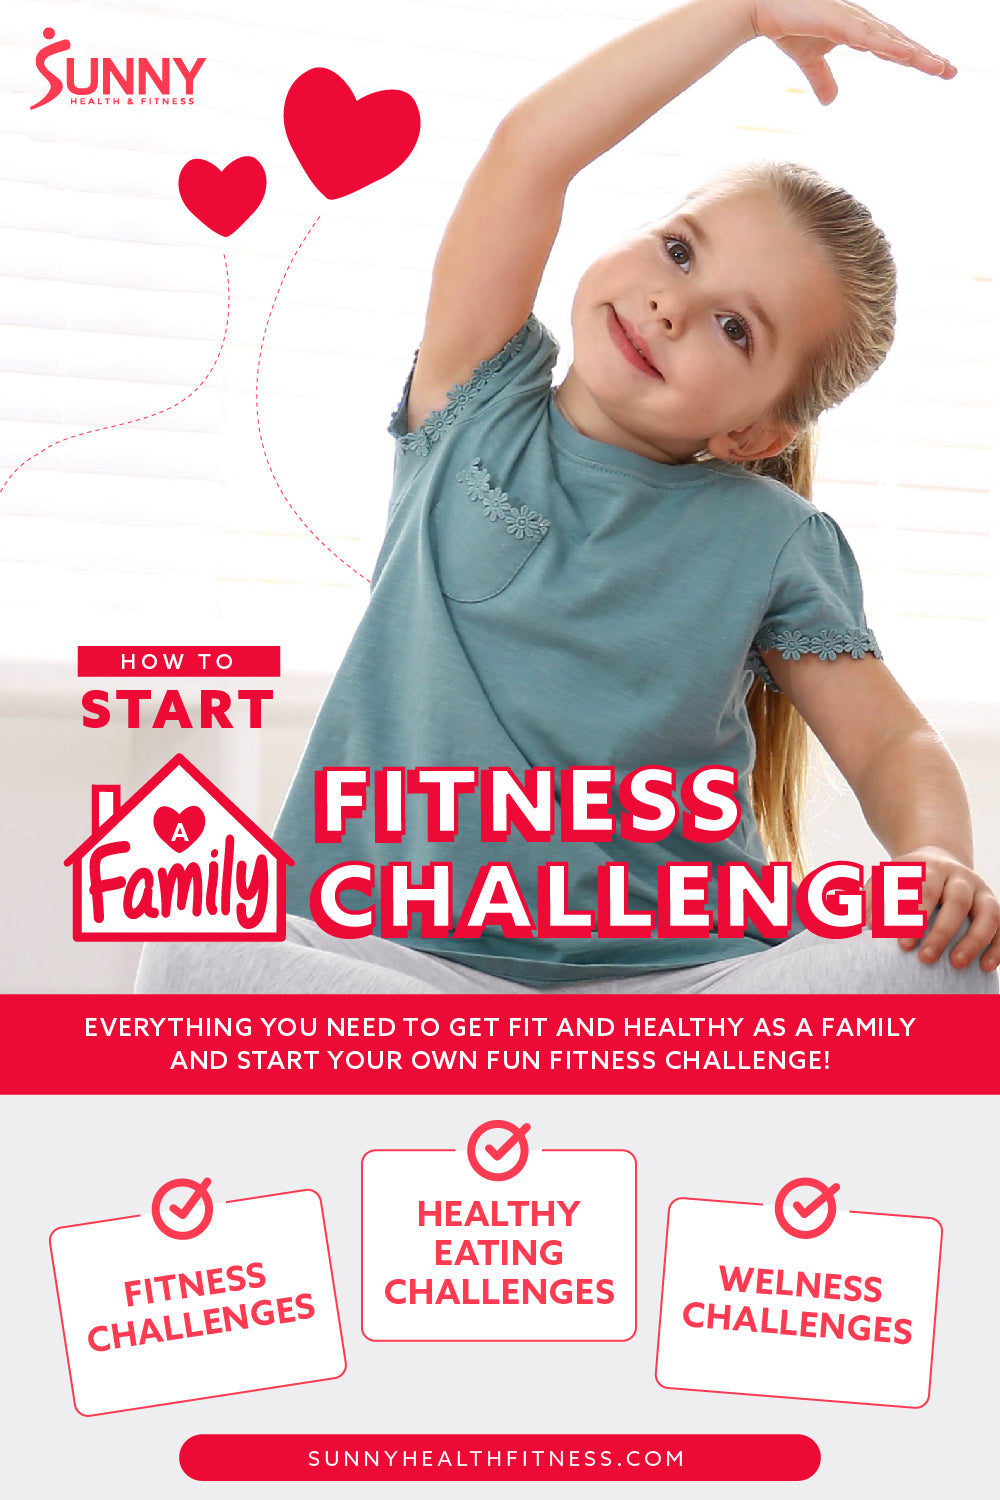 How to Start Family Fitness Challenge